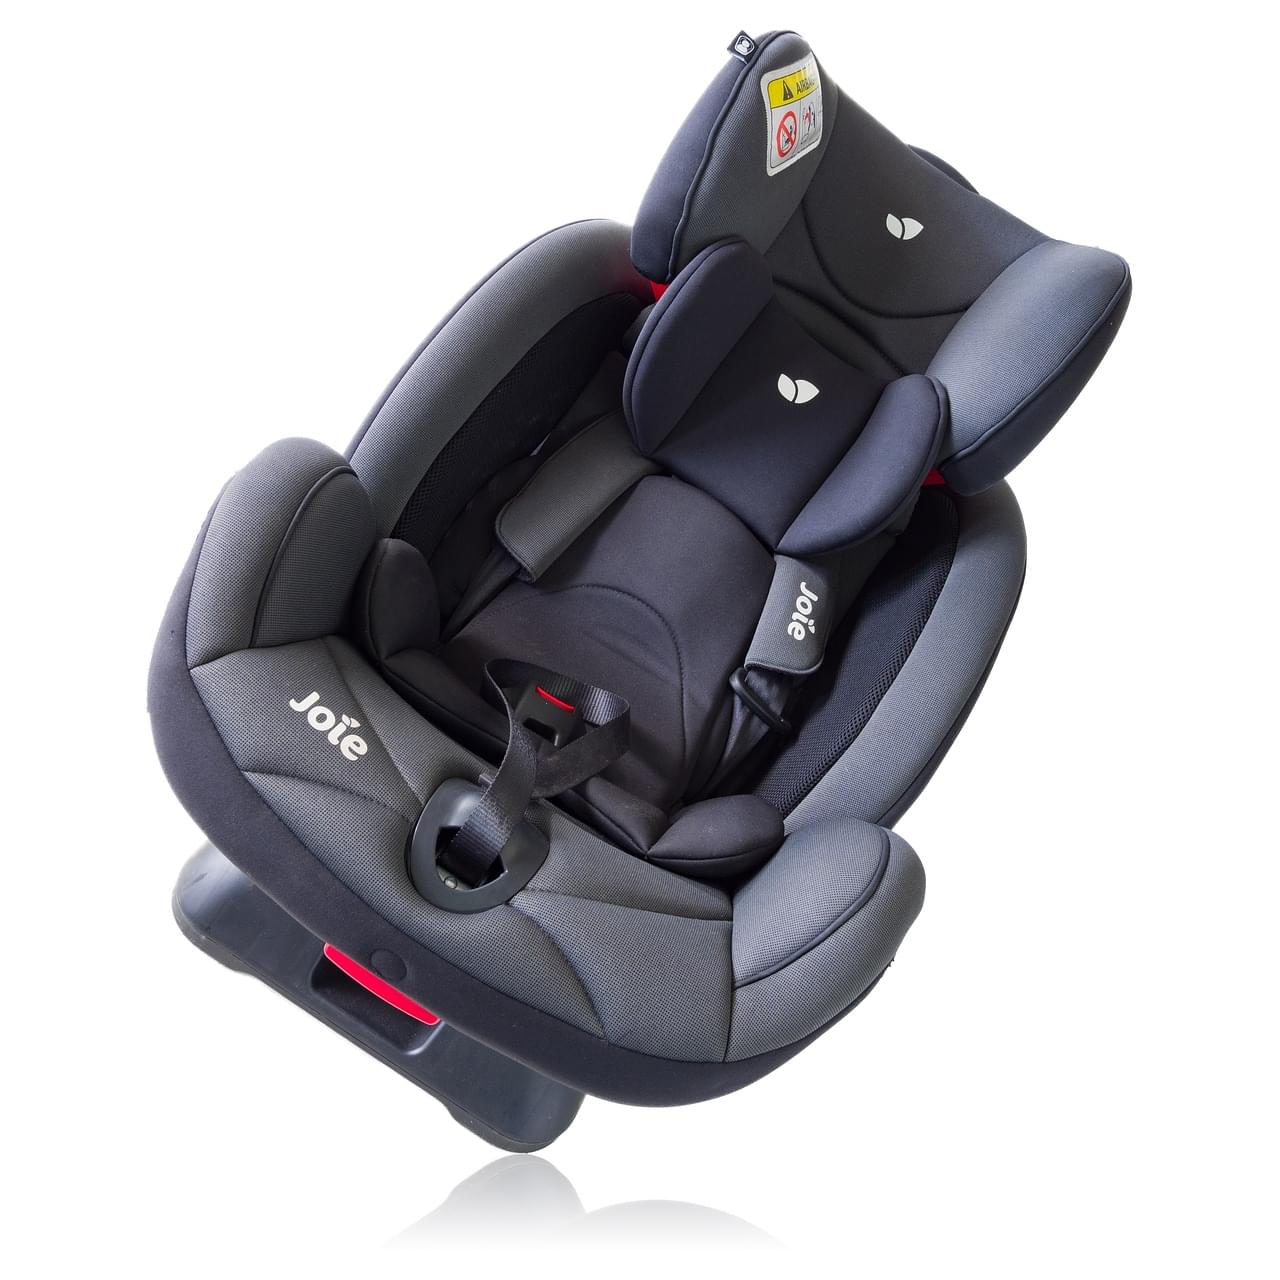 joie-baby-car-seat-3785975_1280